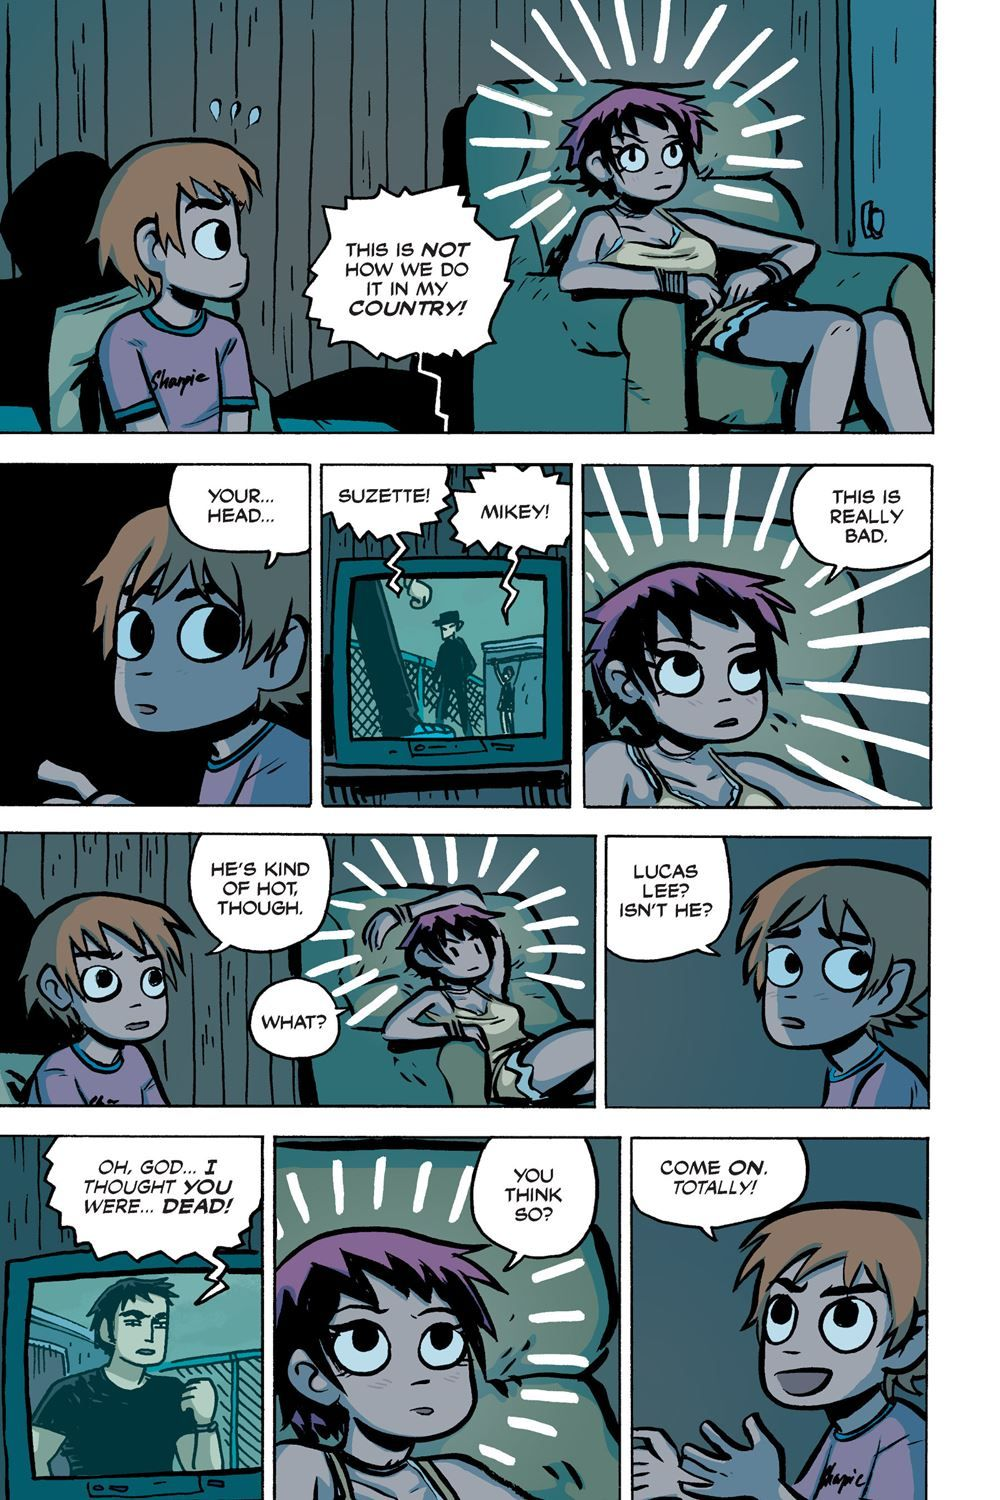 Scott Pilgrim Vol  2 (of 6) Scott Pilgrim vs  the World